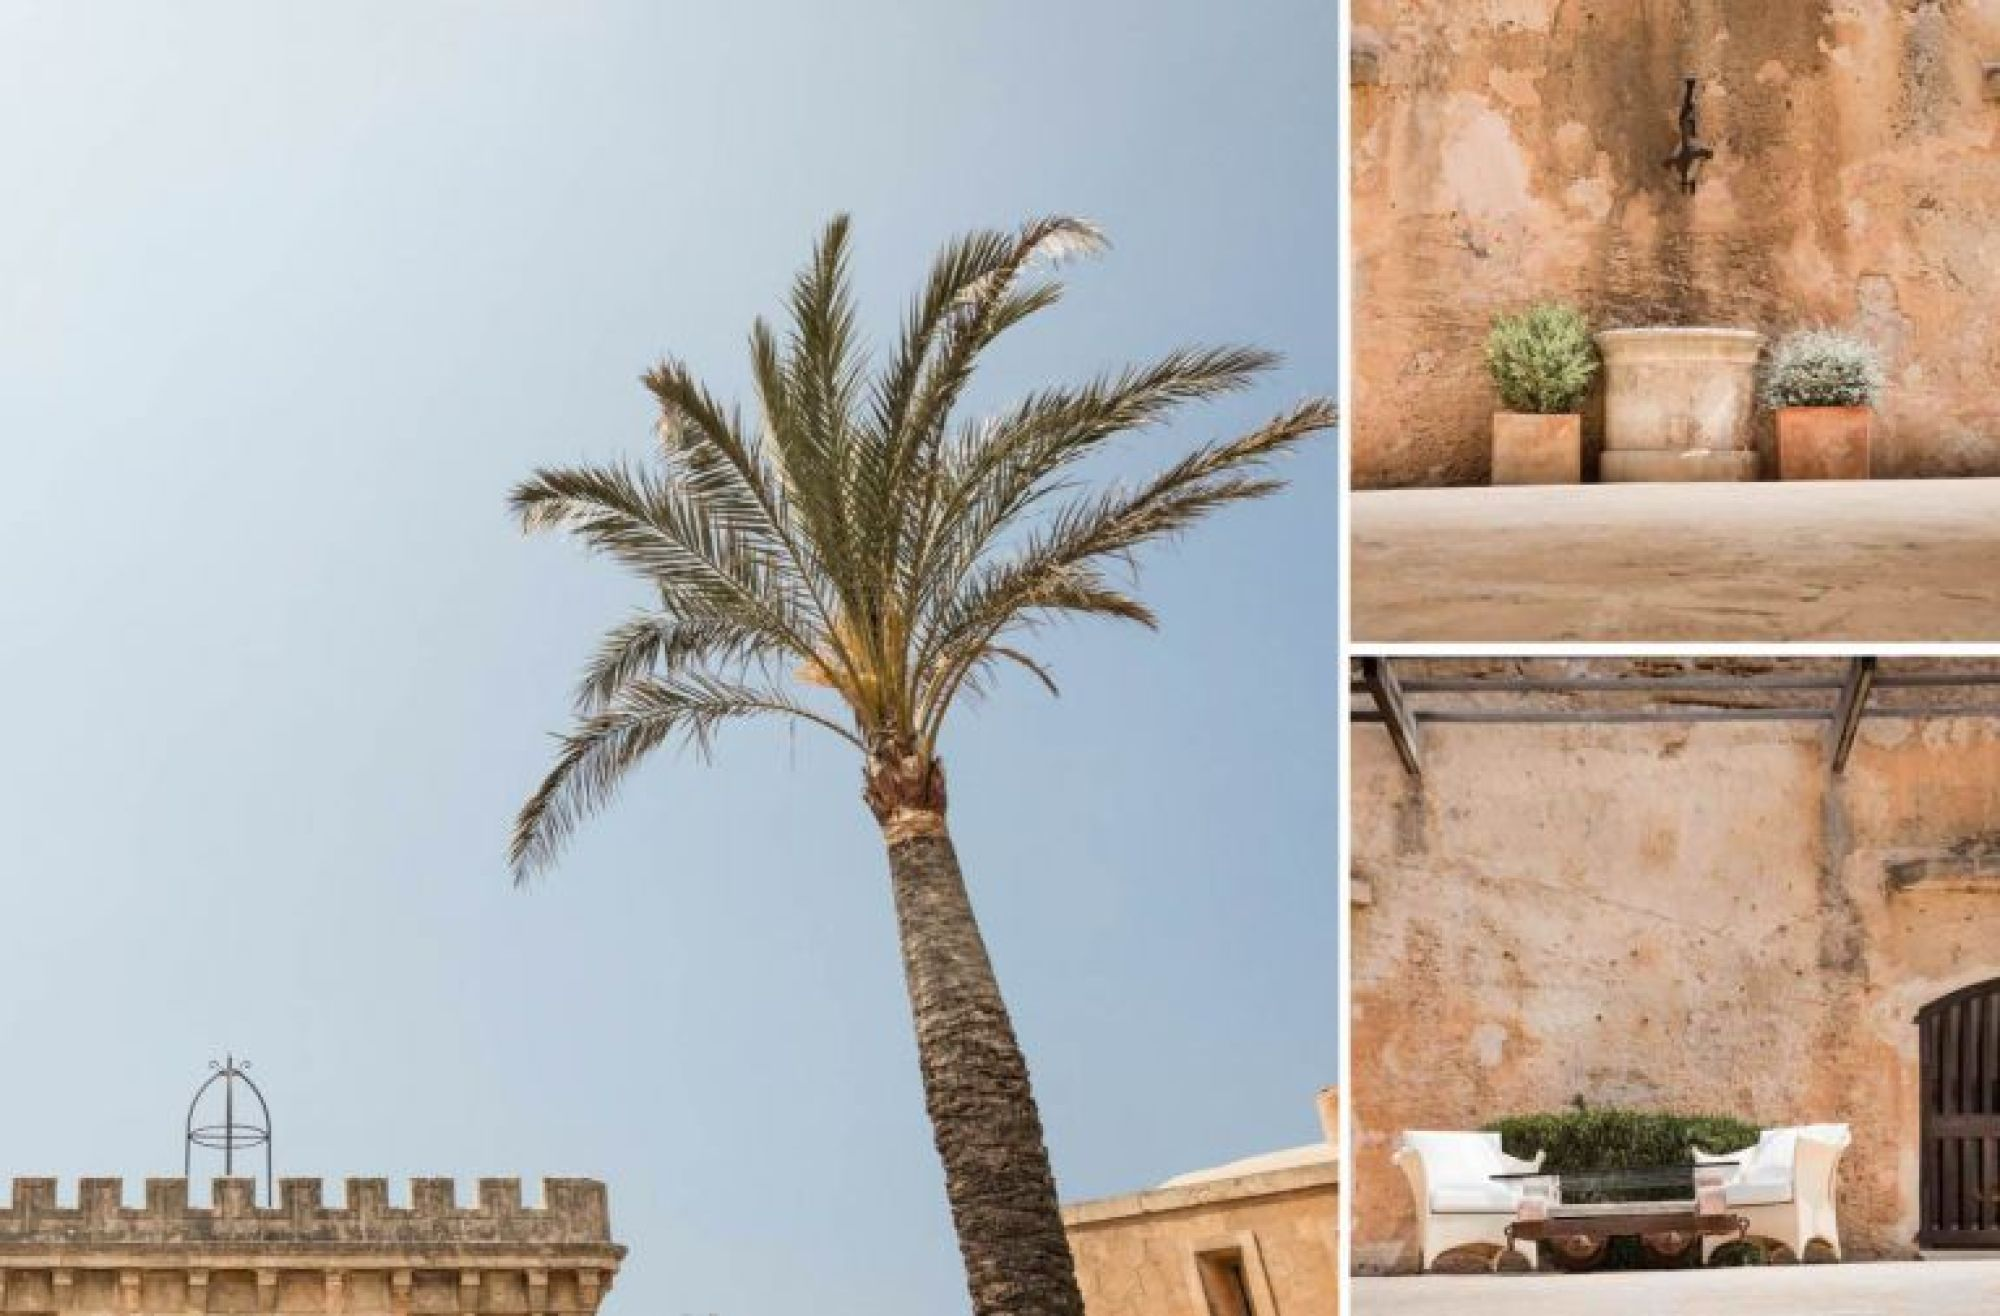 A few scenes at Cap Rocat hotel in Mallorca